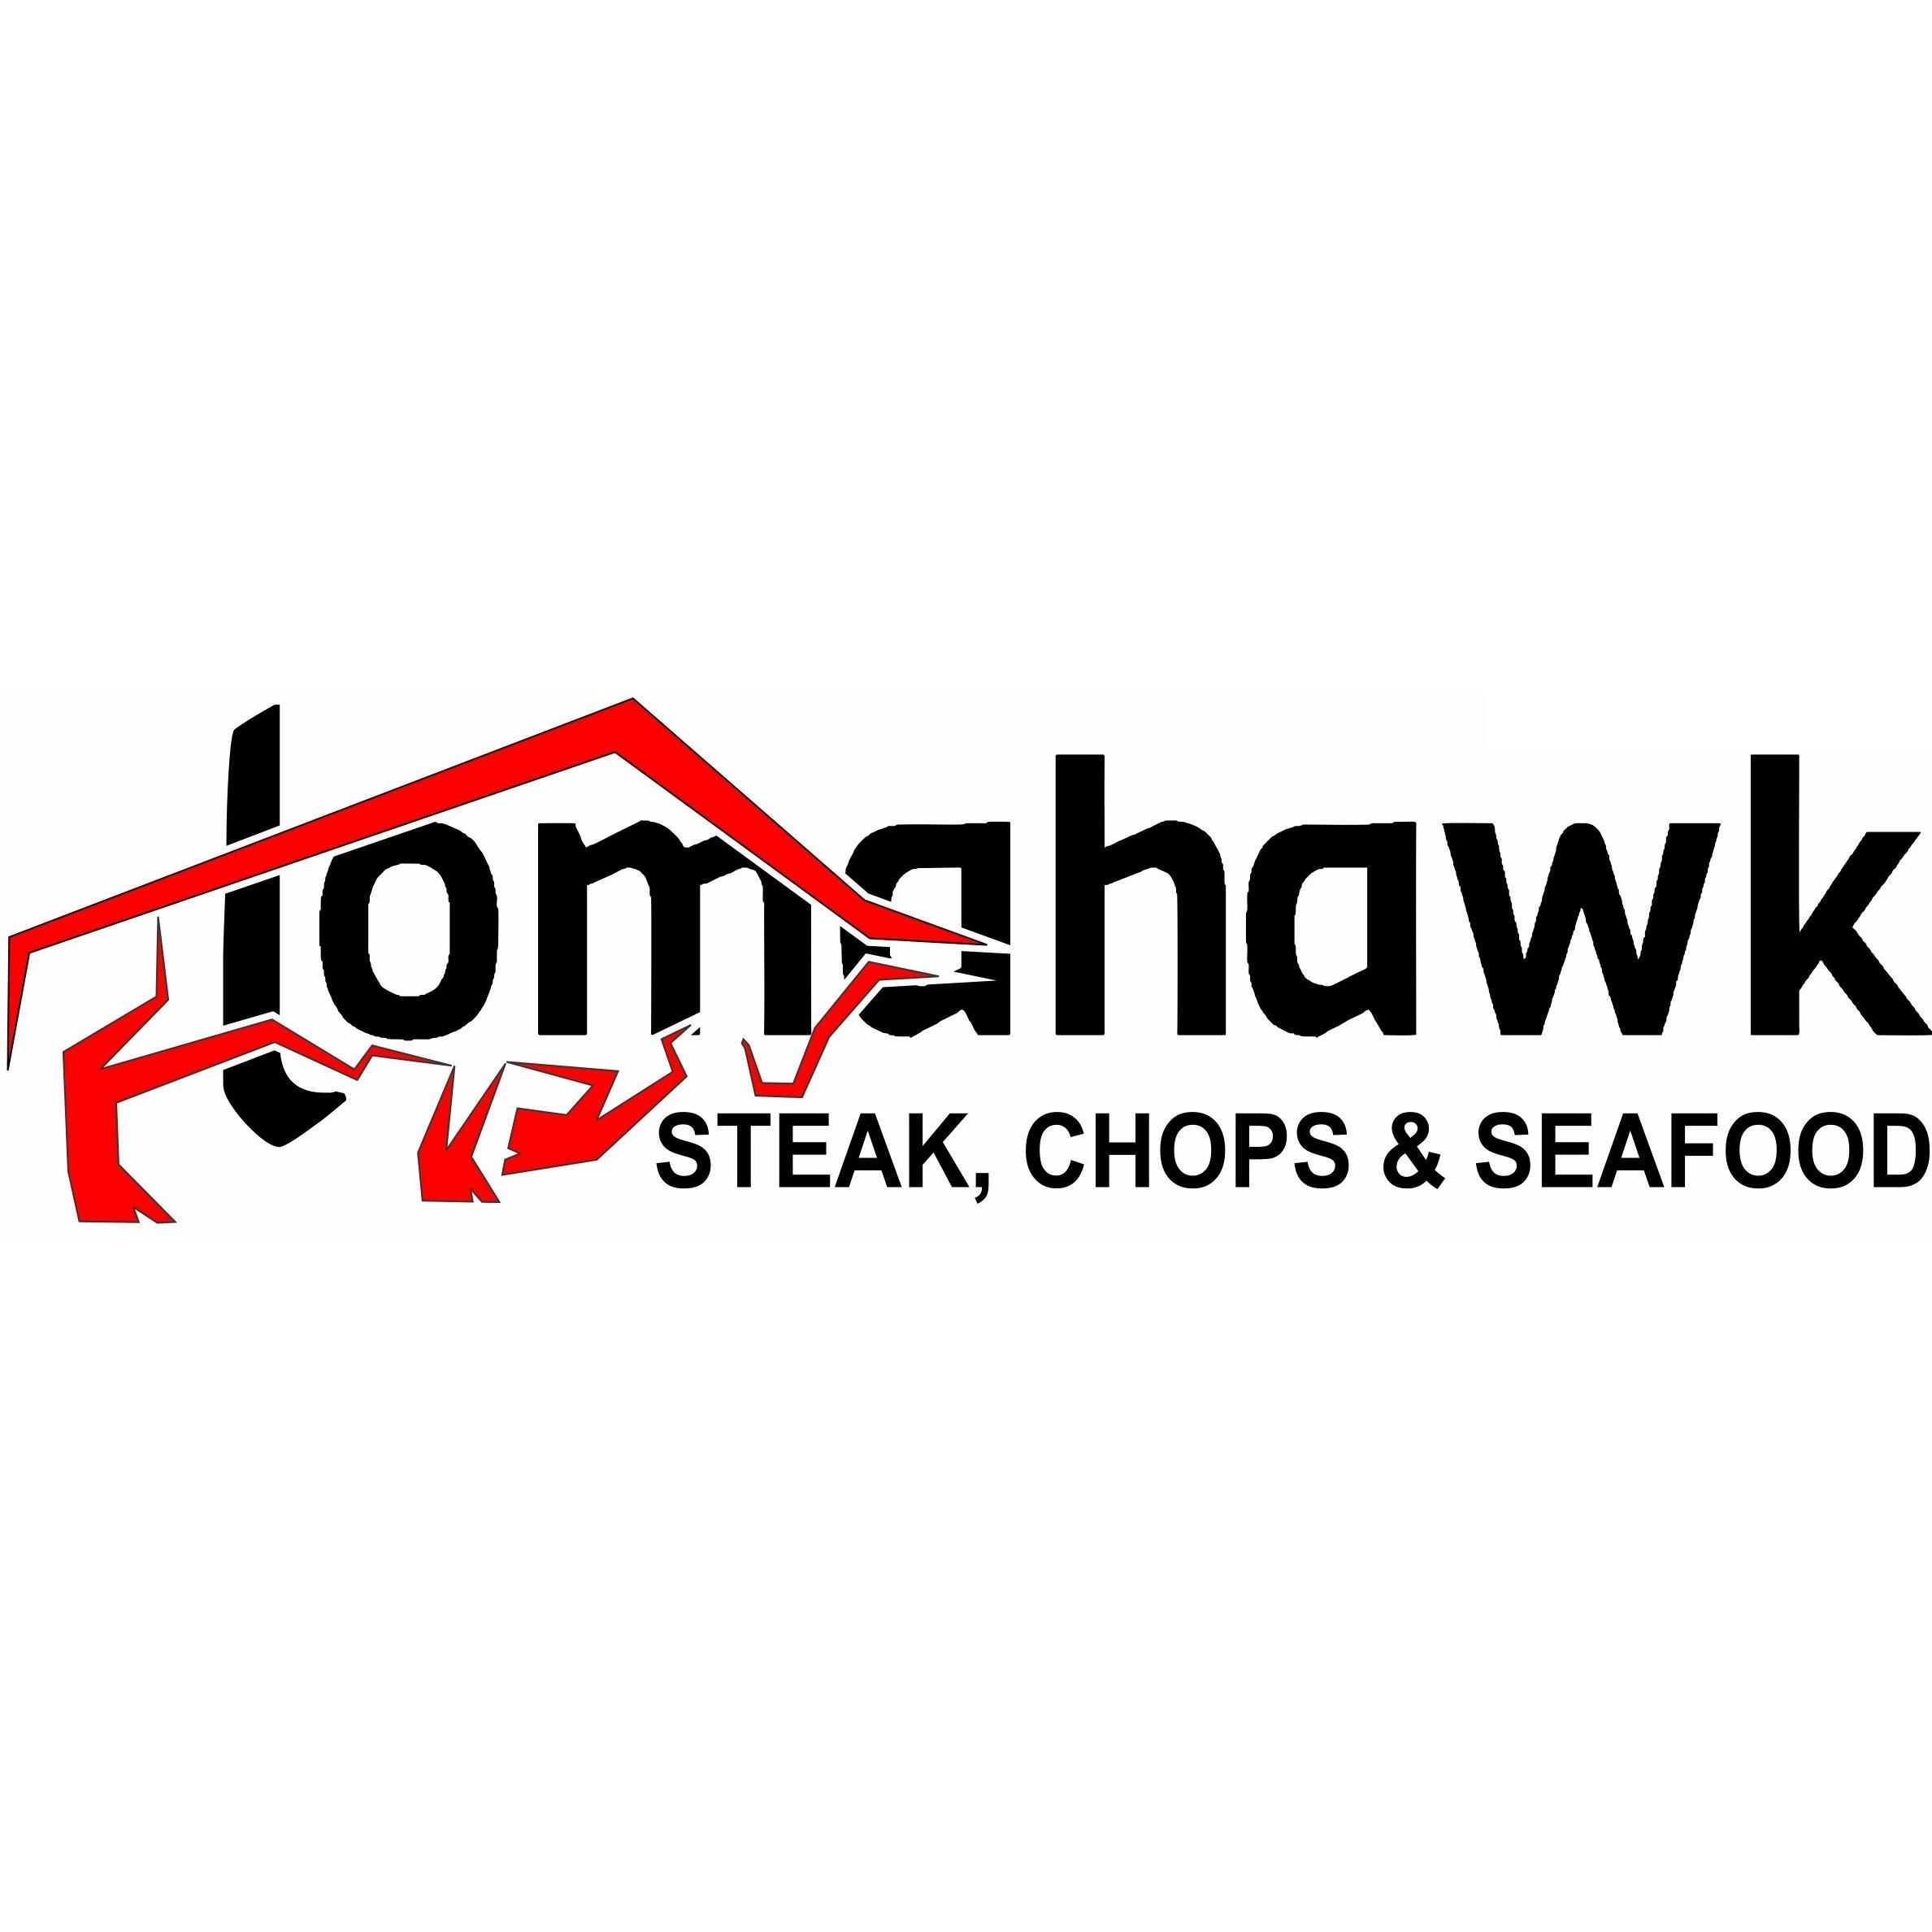 Tomahawk Steak Chops and Seafood